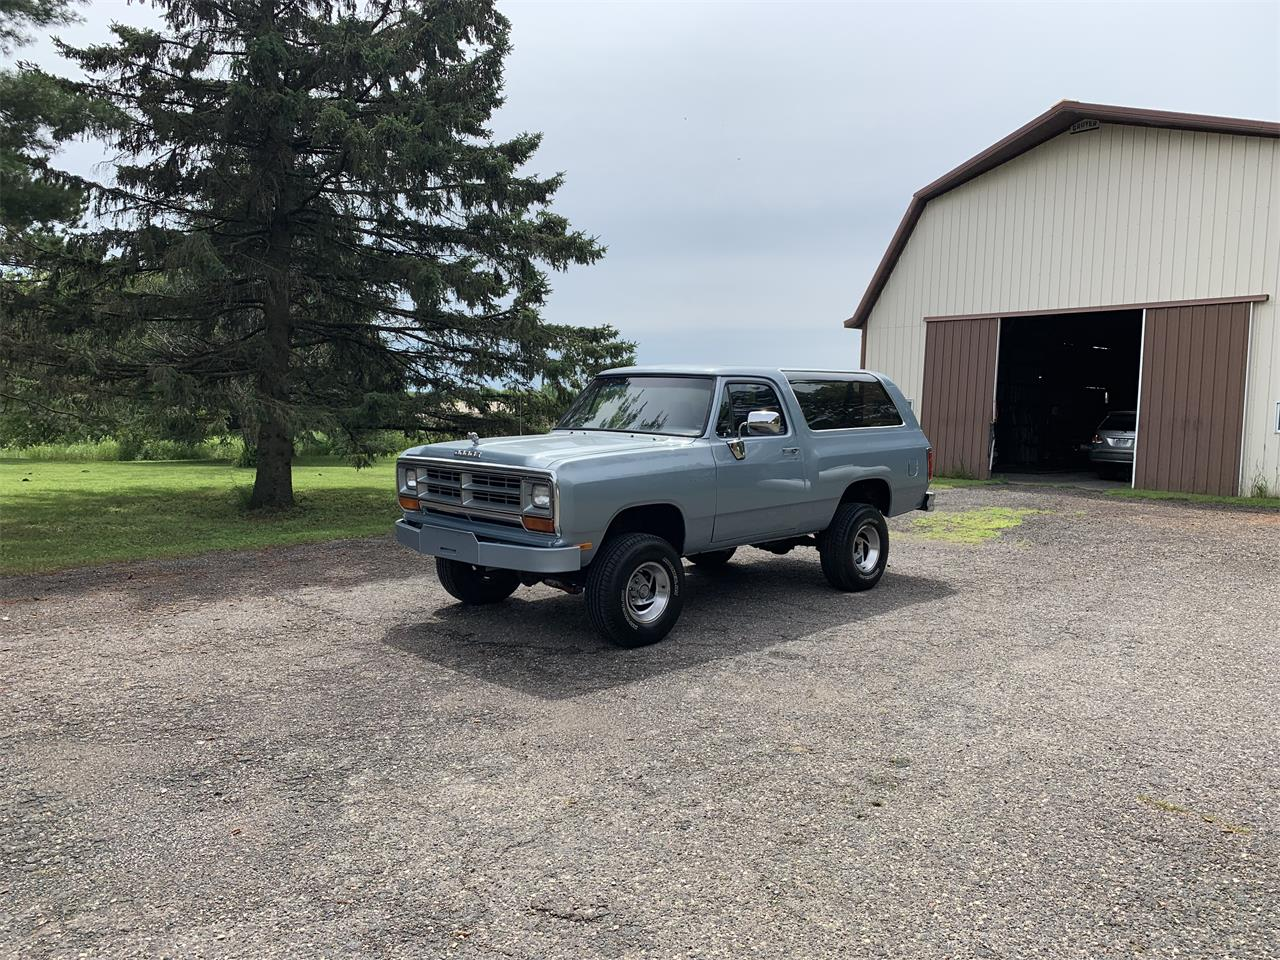 Large Picture of '91 Dodge Ramcharger located in Minnesota - $16,900.00 Offered by a Private Seller - QMVL